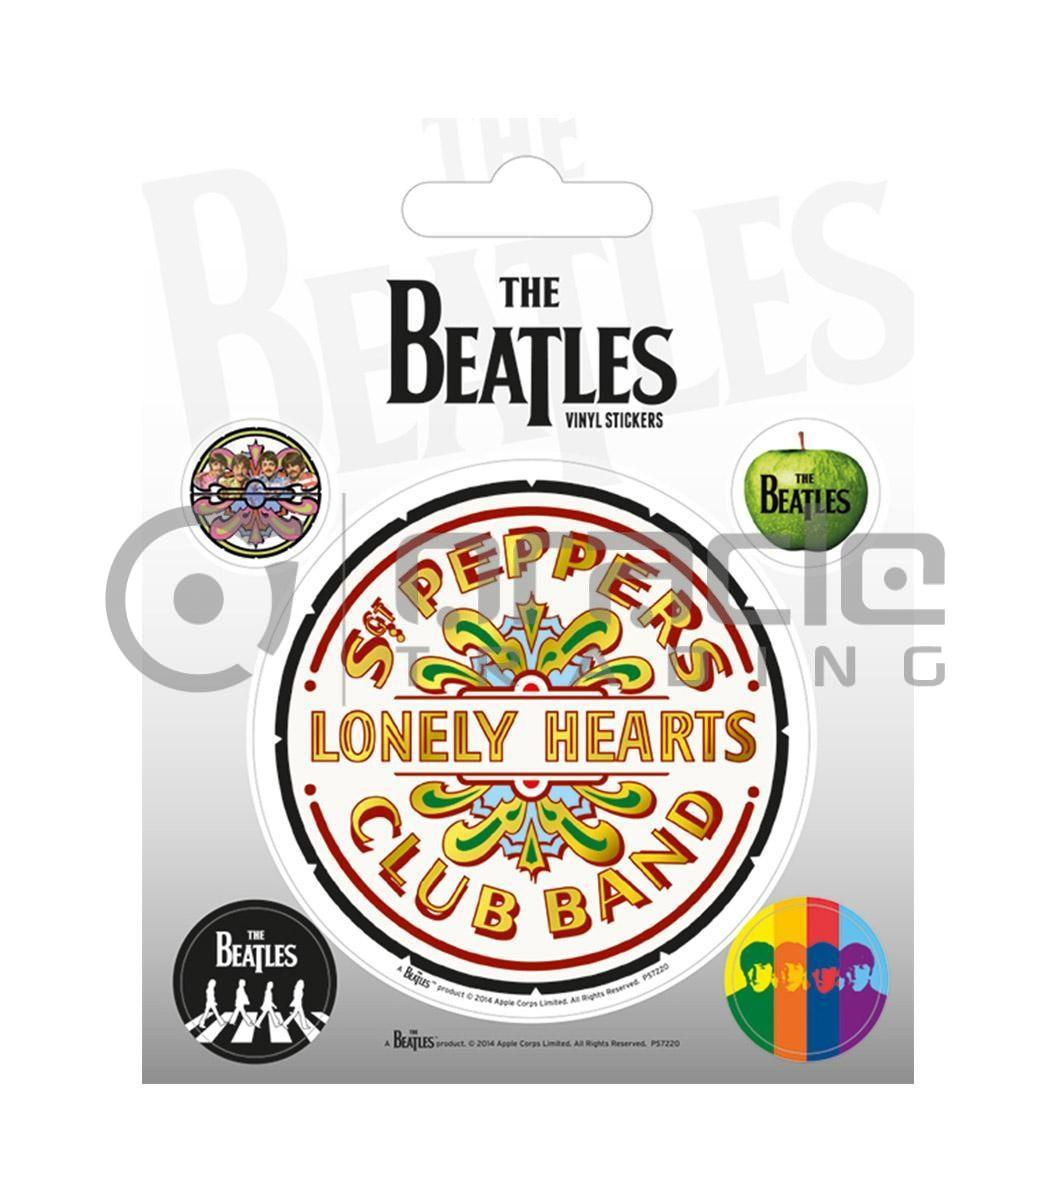 The Beatles Vinyl Sticker Pack - Sgt. Pepper